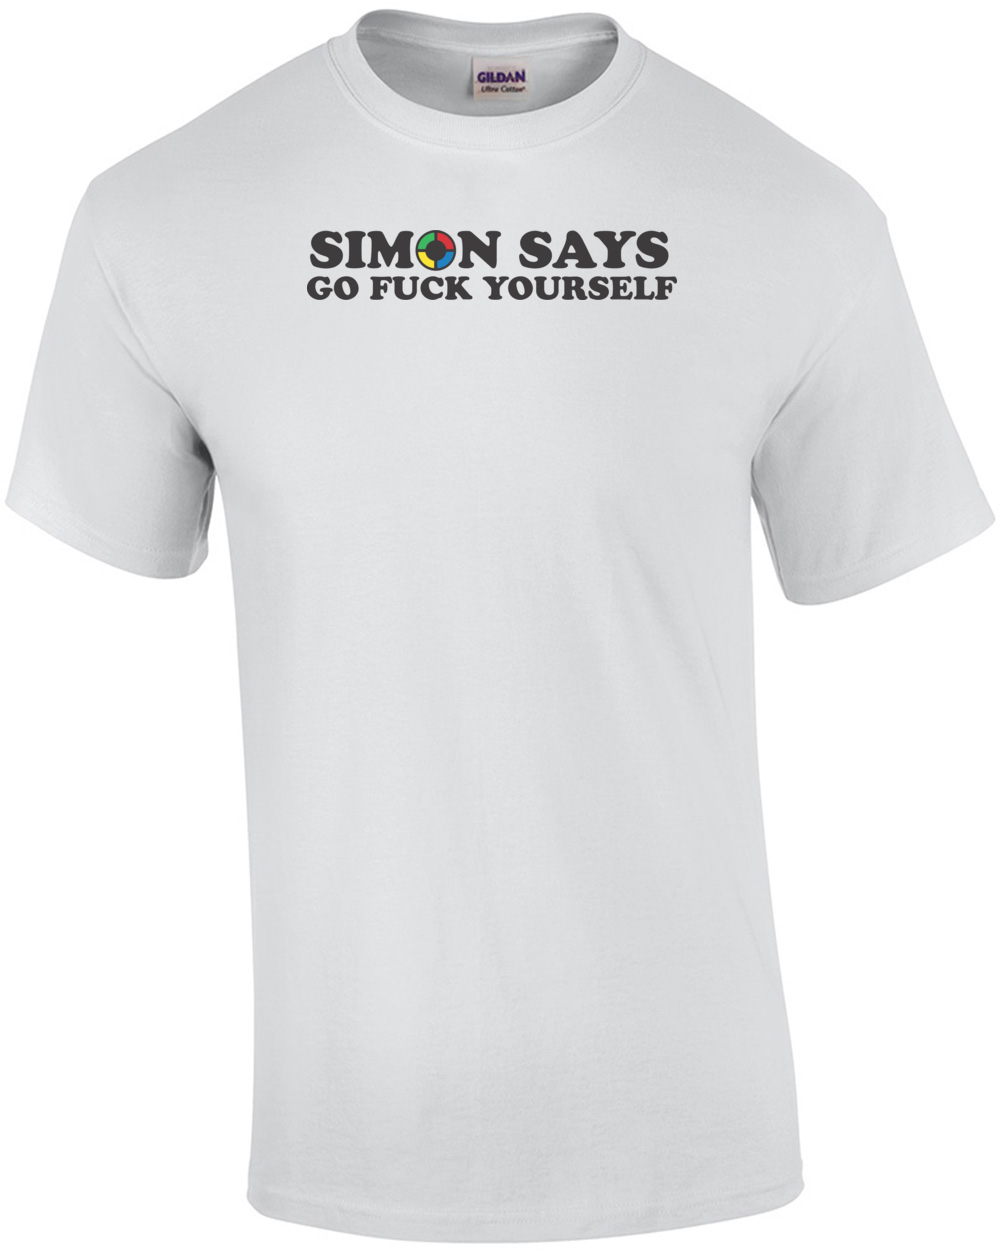 T shirt white black - Simon Says Go Fuck Yourself T Shirt